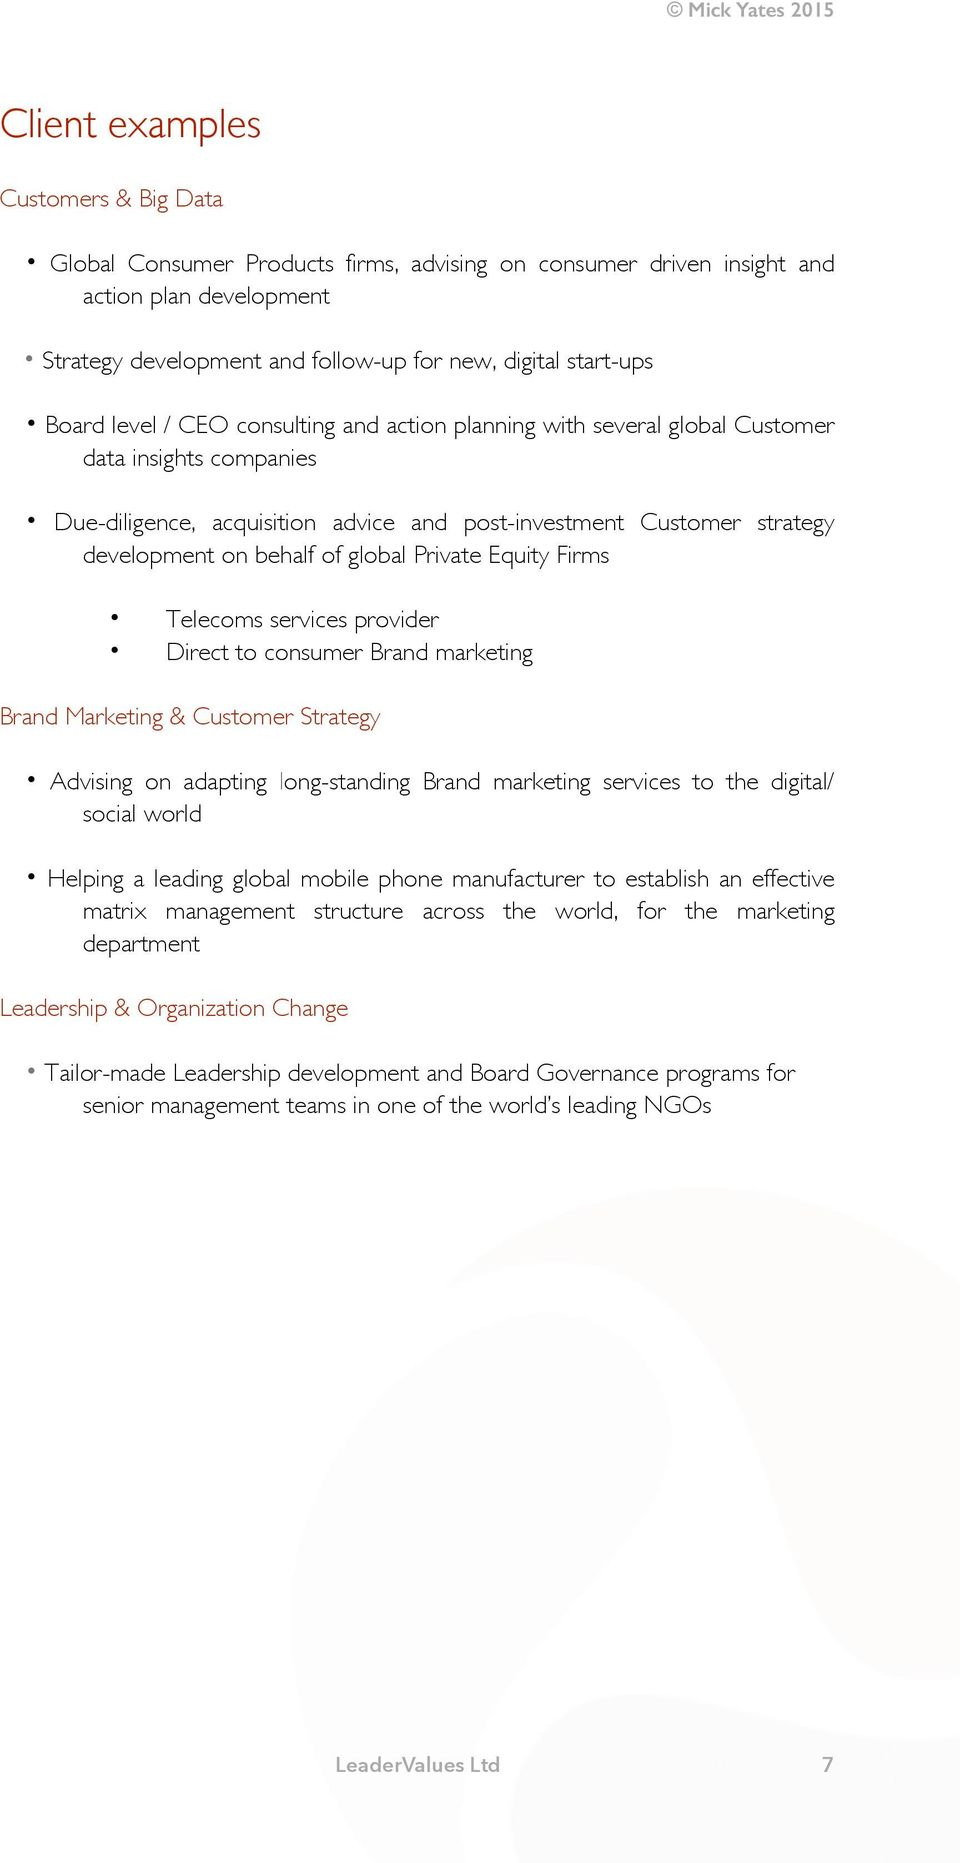 global Private Equity Firms Telecoms services provider Direct to consumer Brand marketing Brand Marketing & Customer Strategy Advising on adapting long-standing Brand marketing services to the